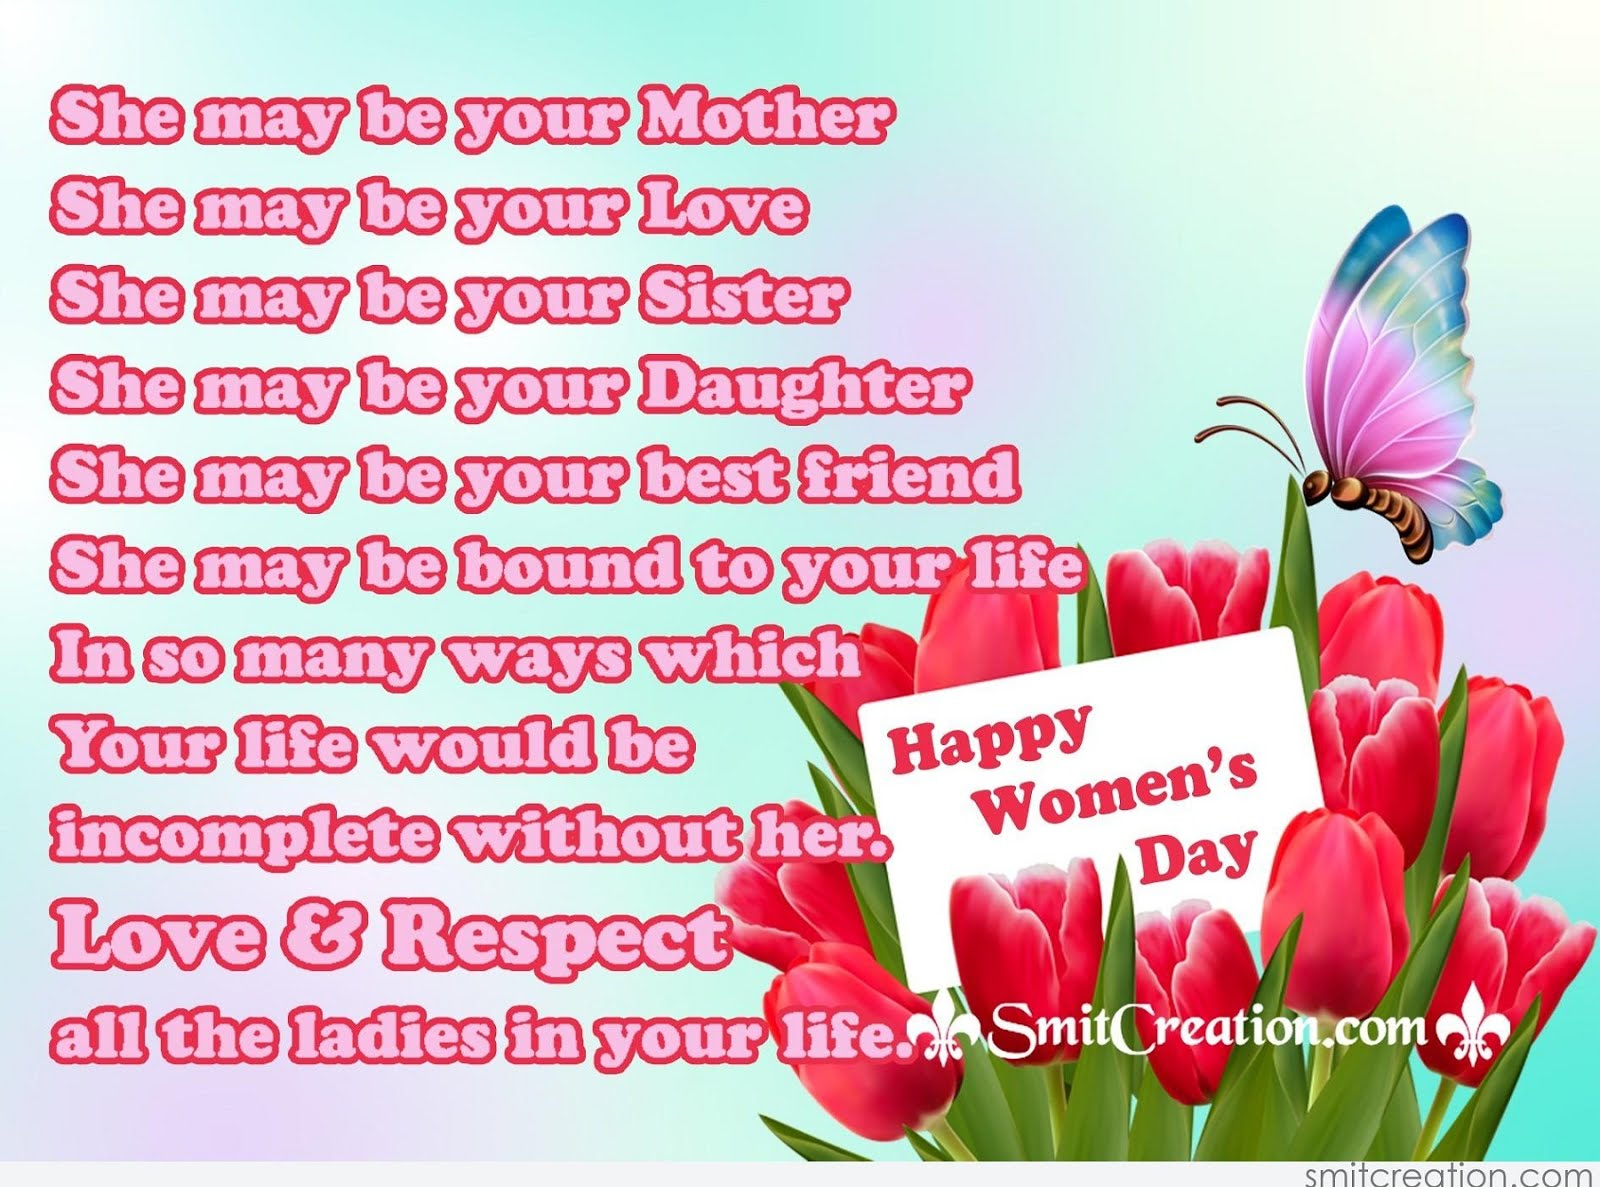 Happy Women's Day Quotes, SMS Messages & Saying Images